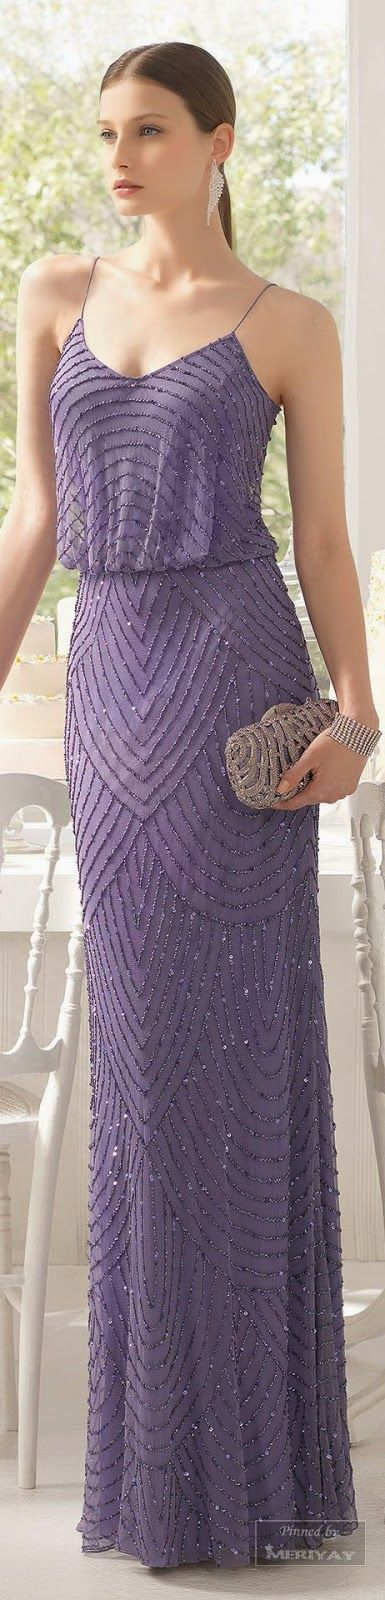 22 best Vestidos Longos images on Pinterest | Ball gown, Party ...